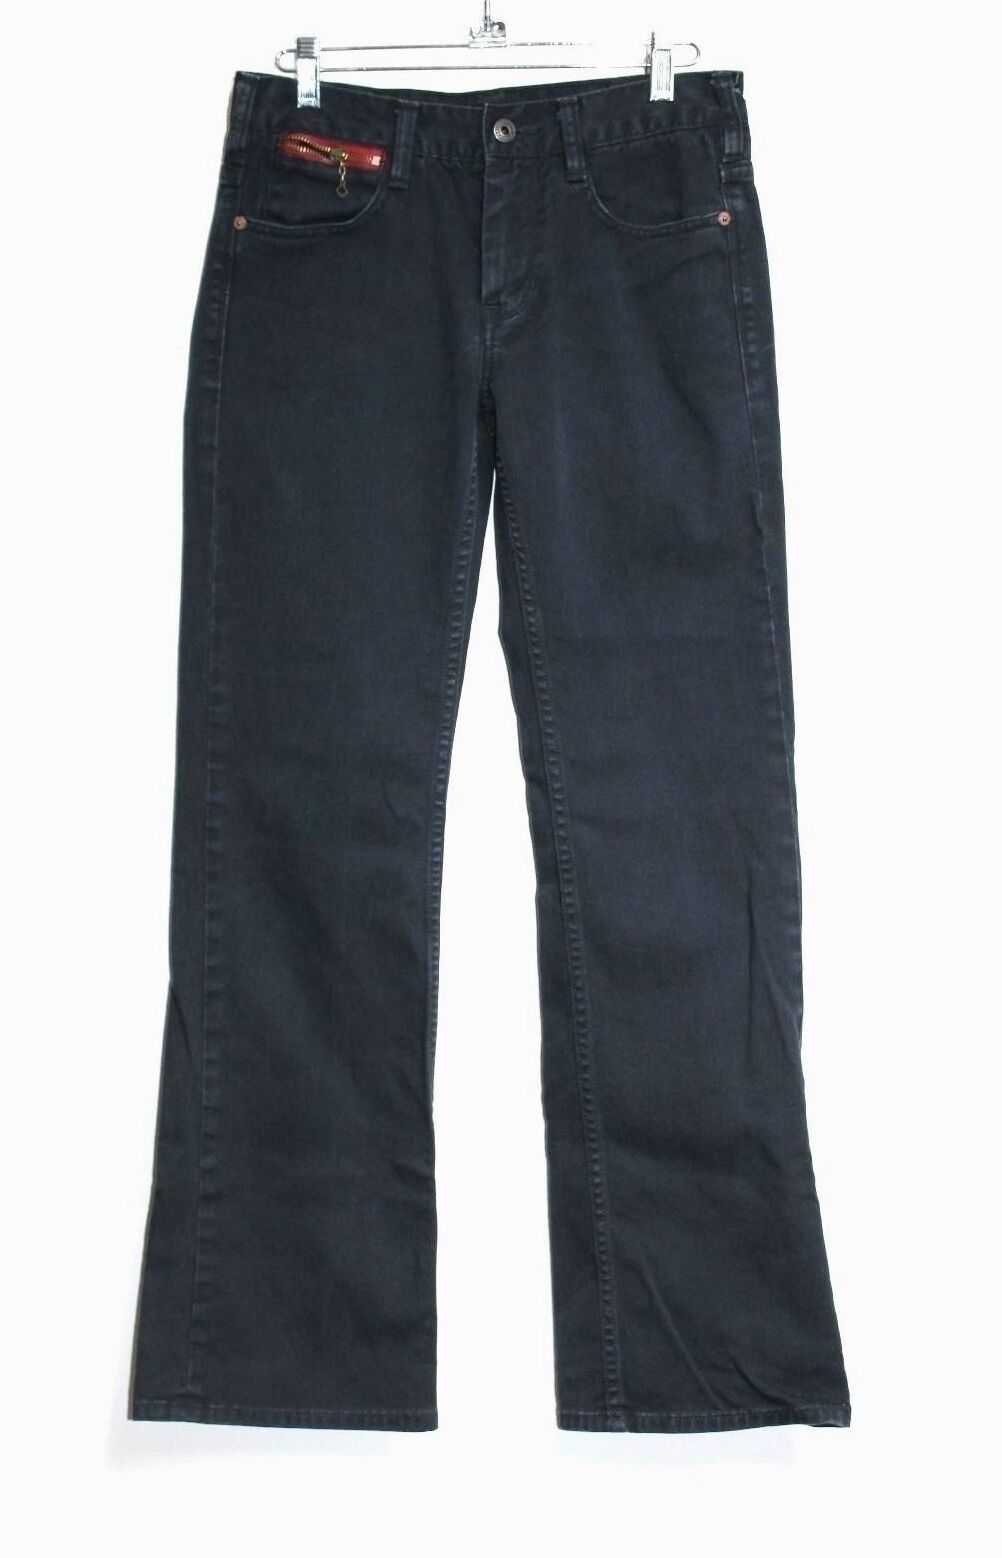 Ralph Lauren bluee Label  - 27 - bluee Dark-Wash Denim - Tribeca 114 Boot Cut Jeans  official website